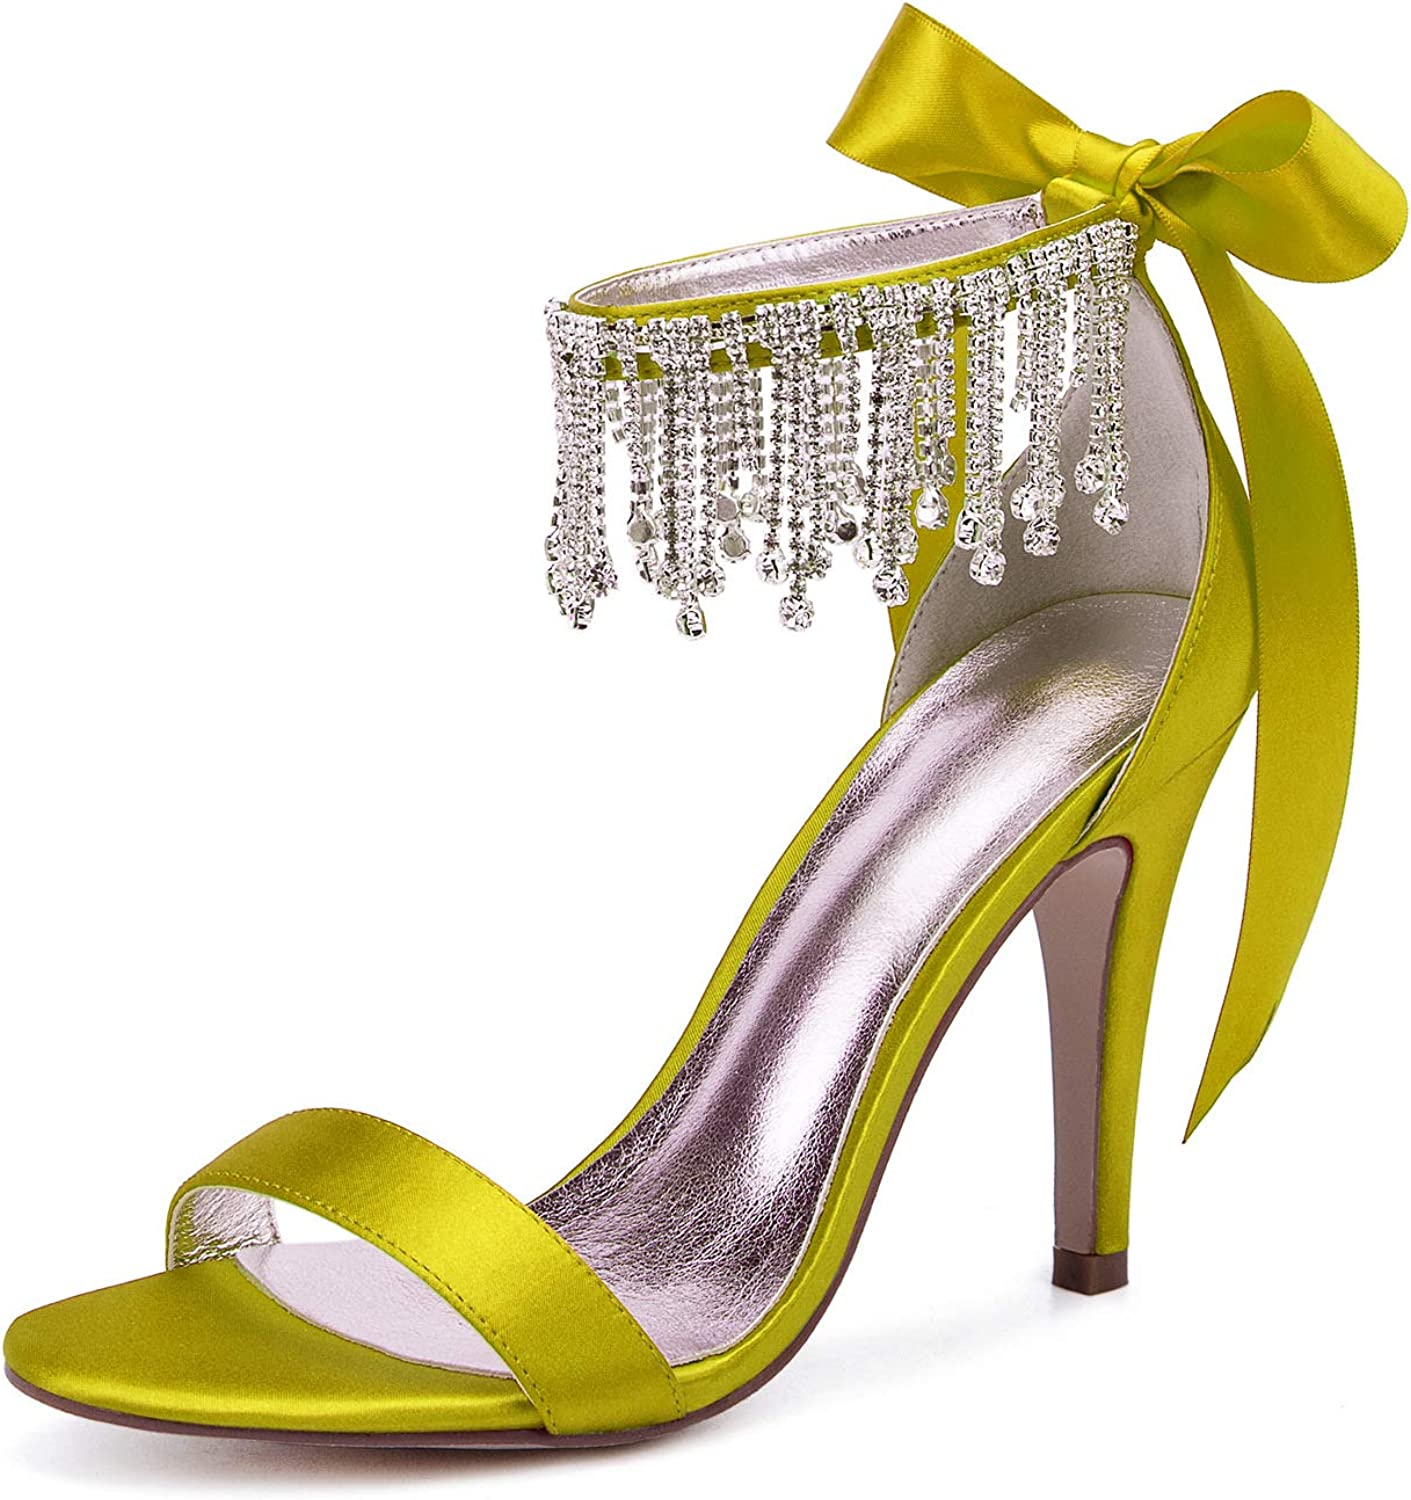 LLBubble Wedding Heels for List price Bride Crystals Tassel New sales Evening Pa Prom